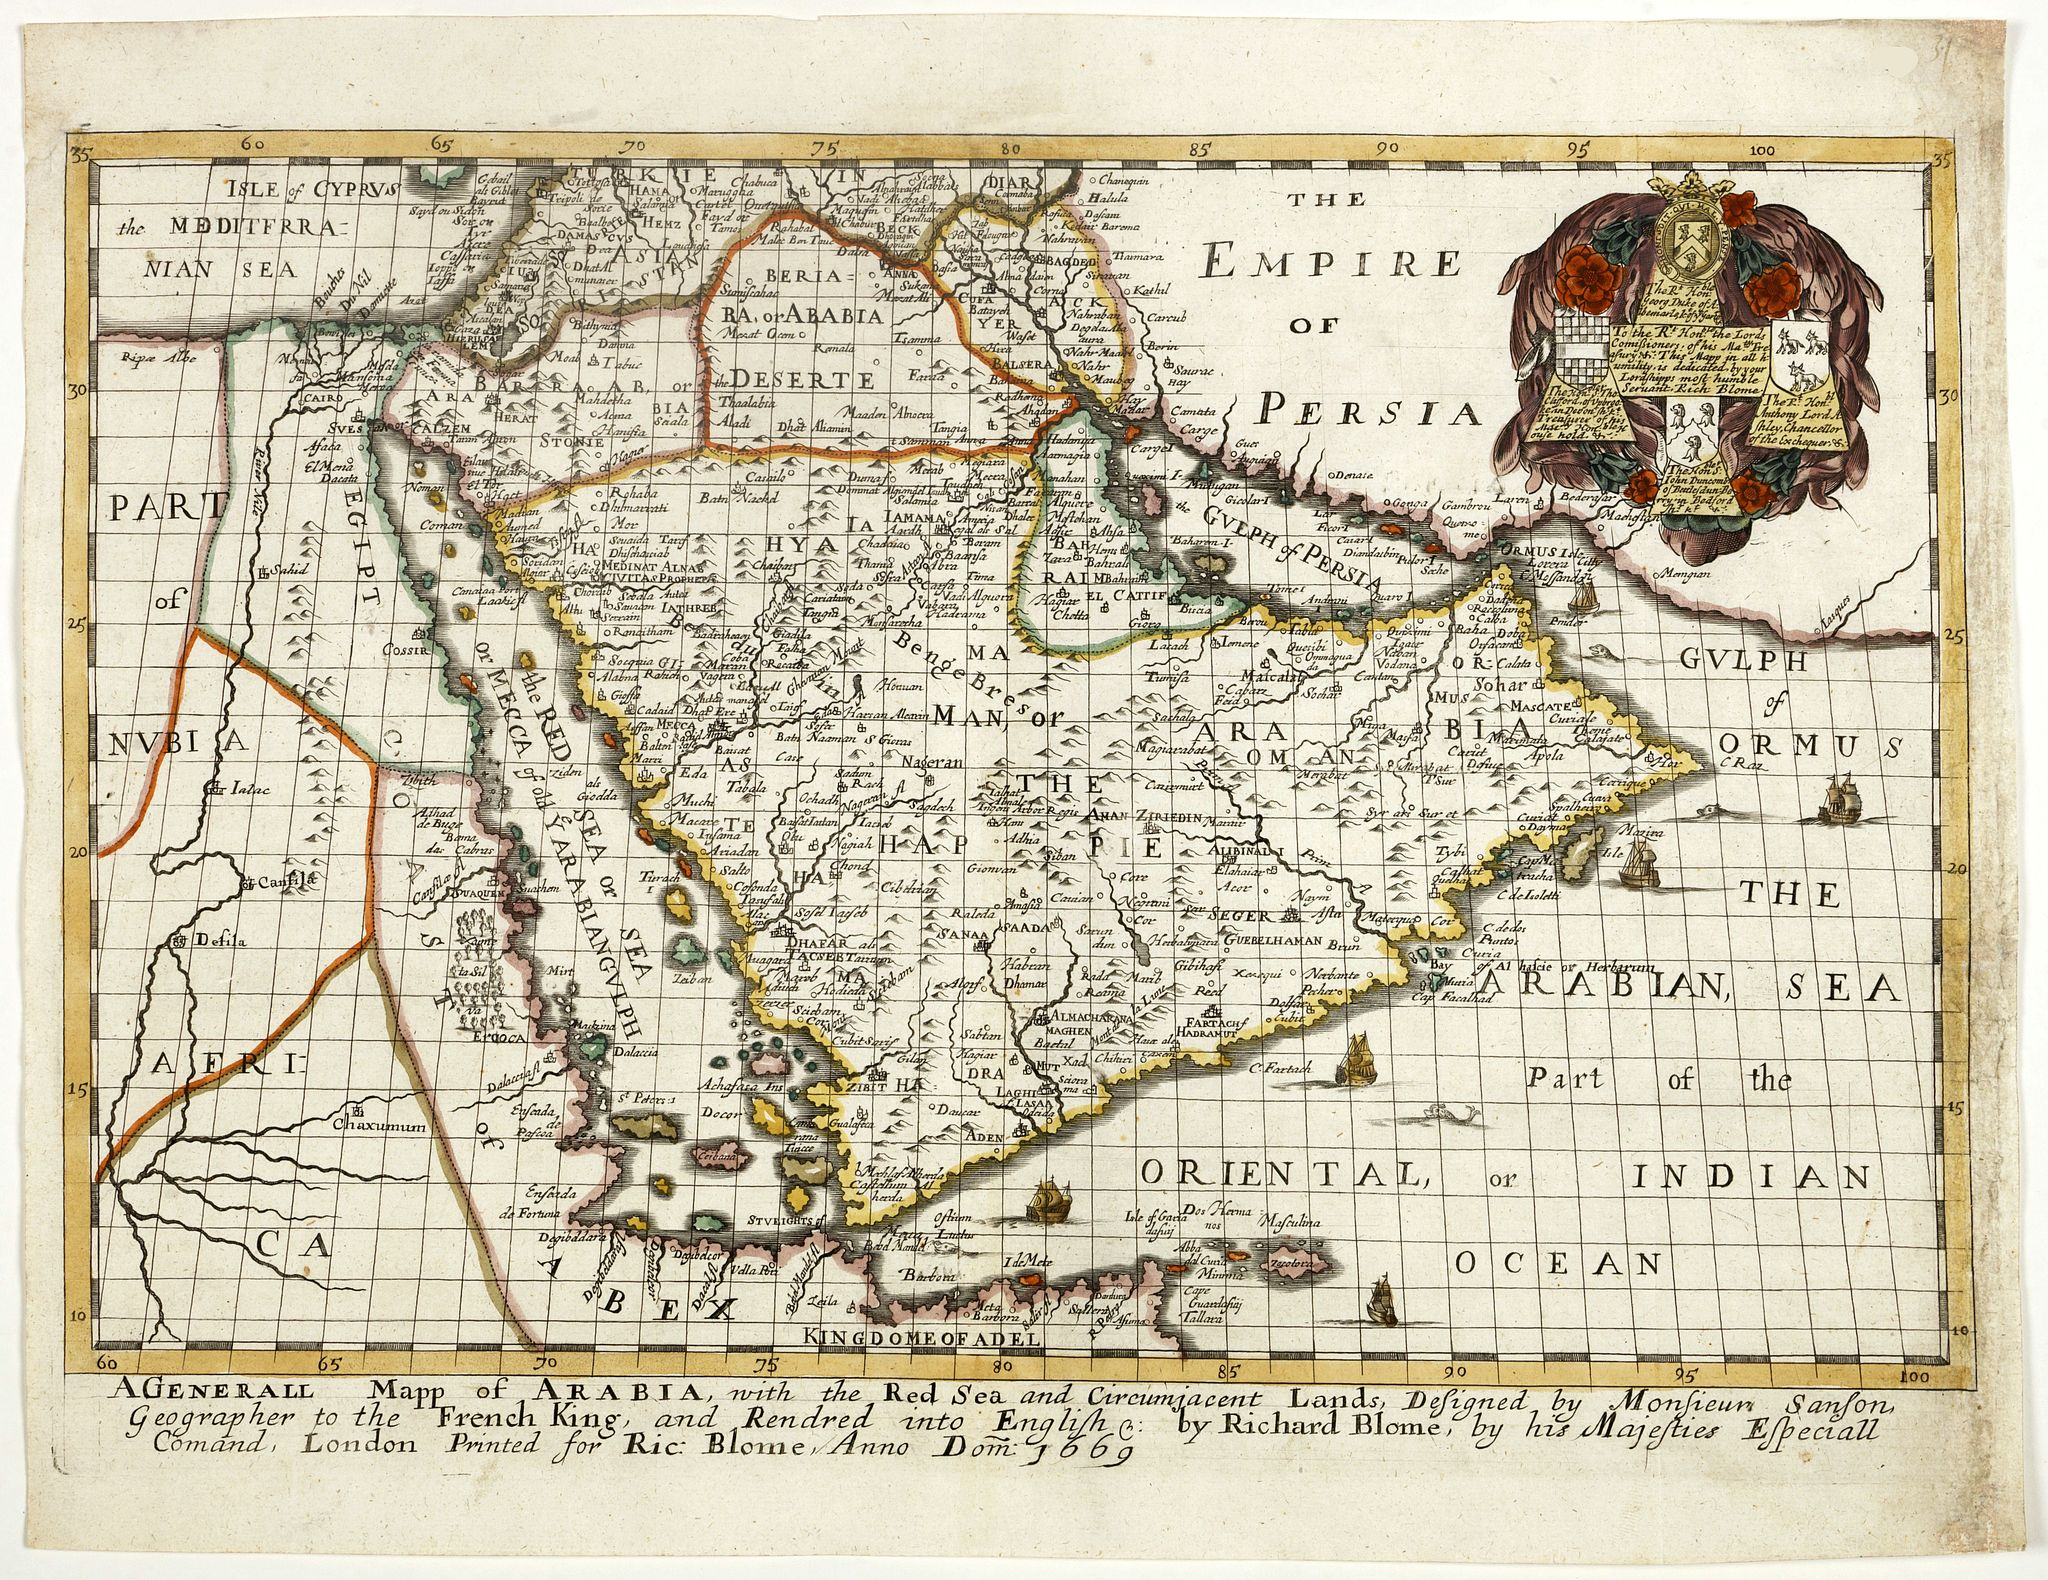 BLOME,R. - A generall mapp of Arabia, with the Red Sea and circumjacent lands . . .